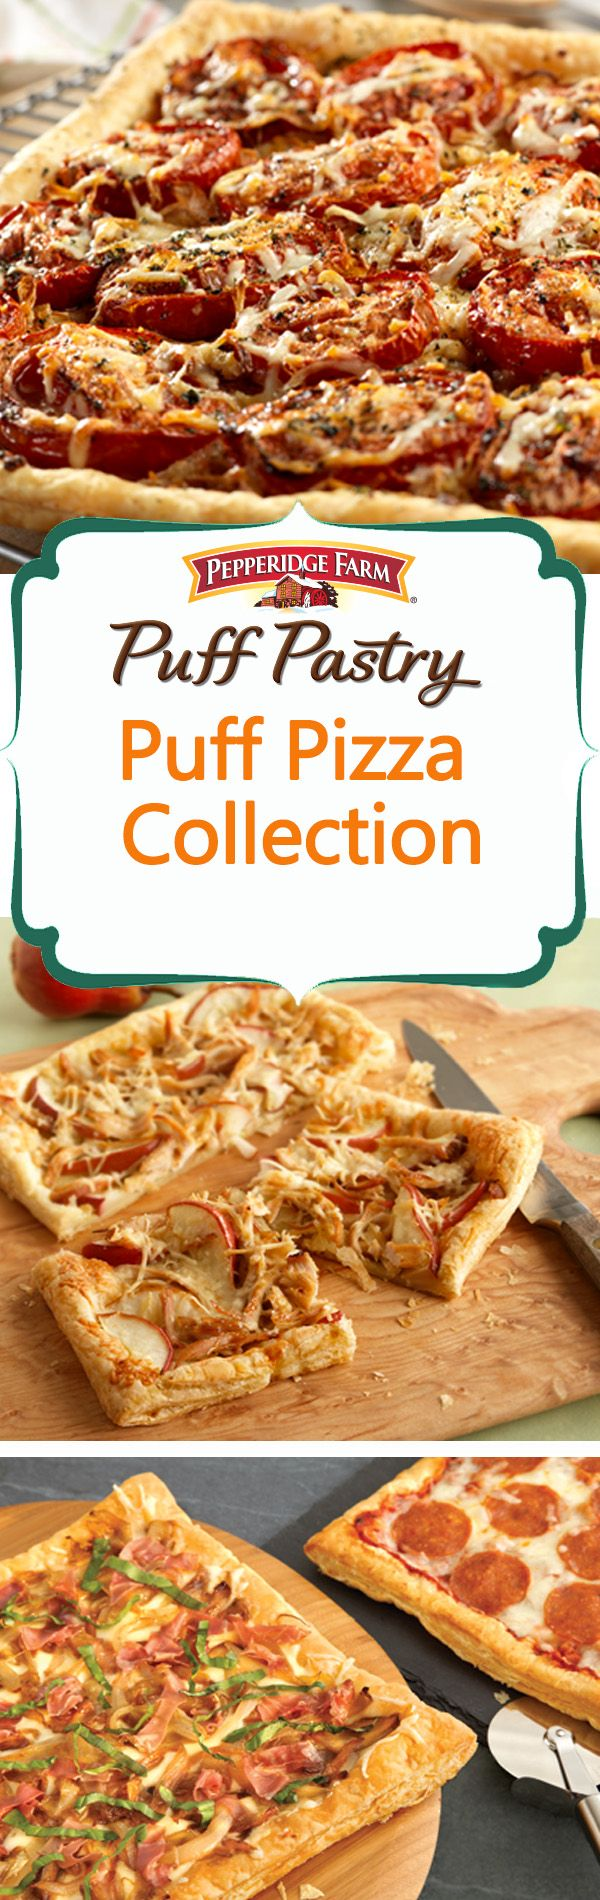 25+ bästa Pillsbury pizza crust recipes idéerna på ...